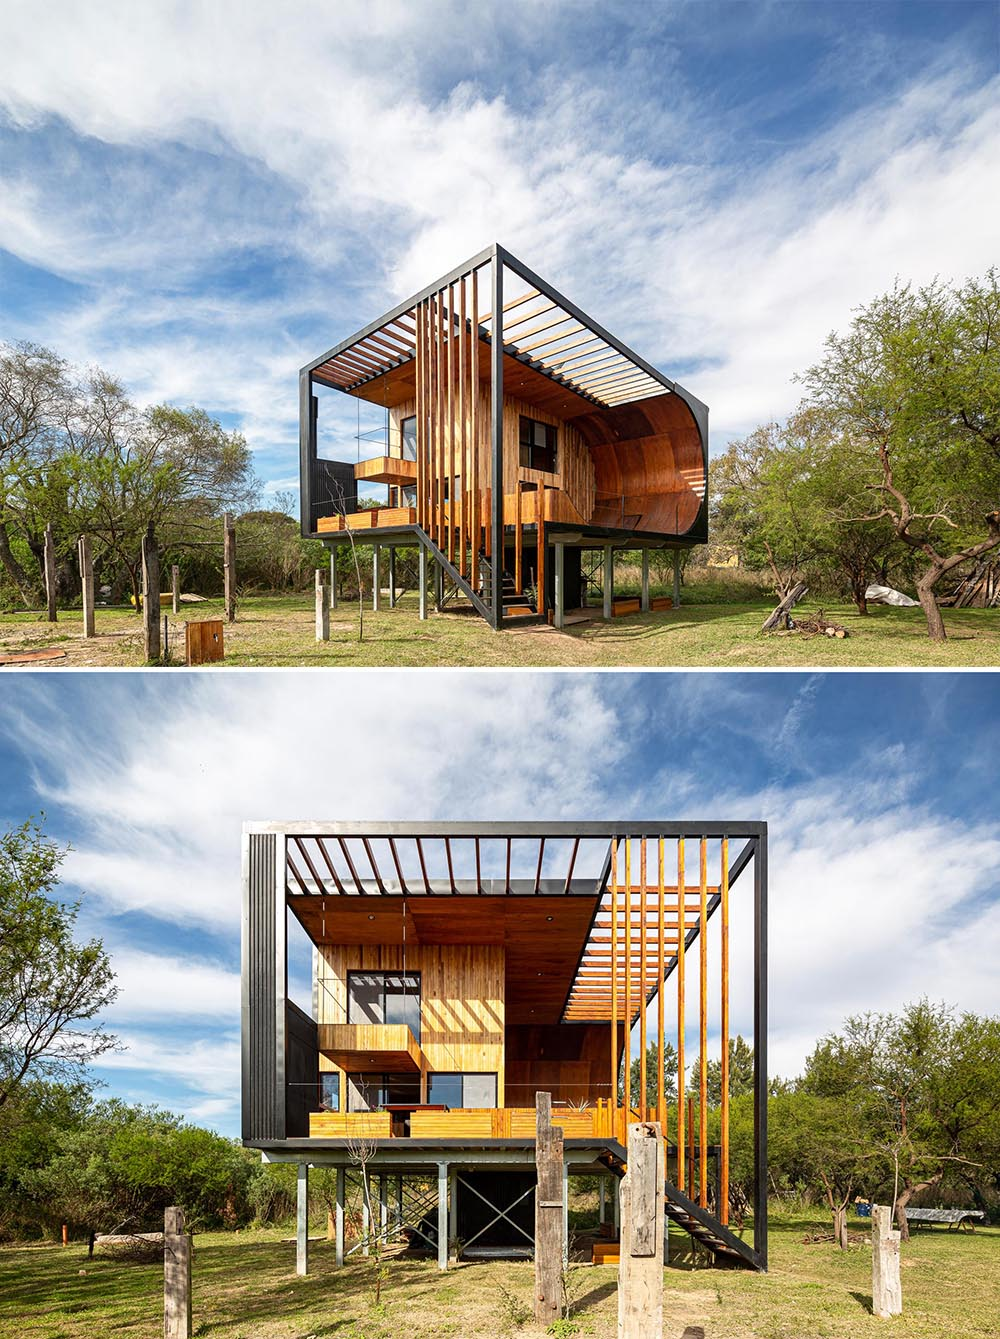 A small and modern house with a built-in skateboard ramp, wood exterior cladding, and black metal.